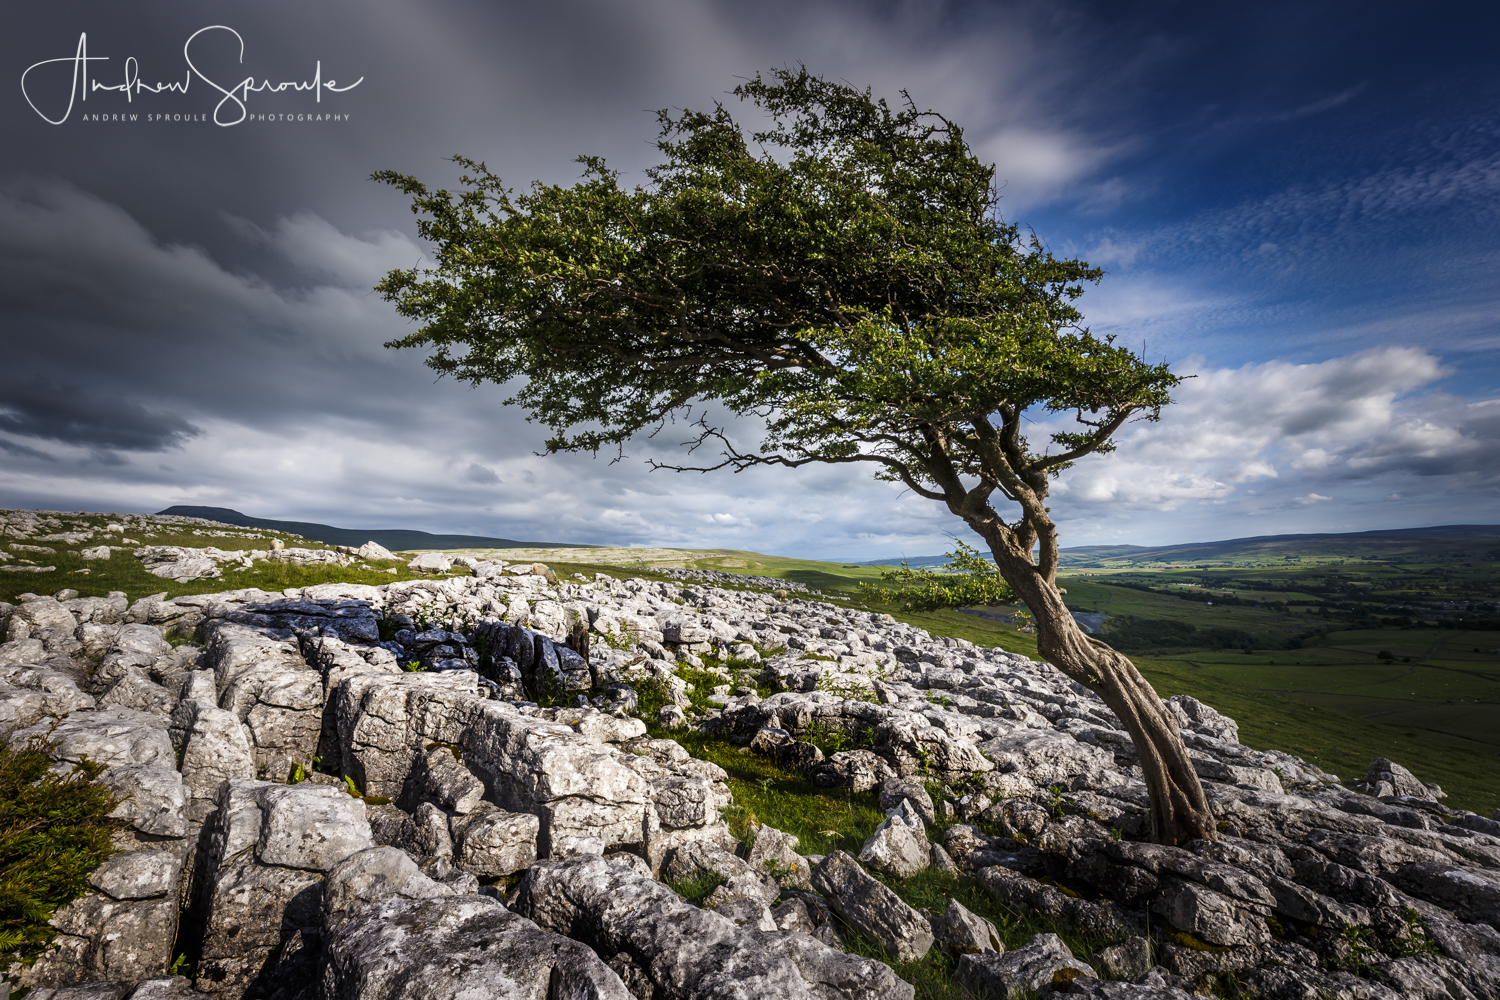 Andrew Sproule Photography | Landscapes | England Gallery